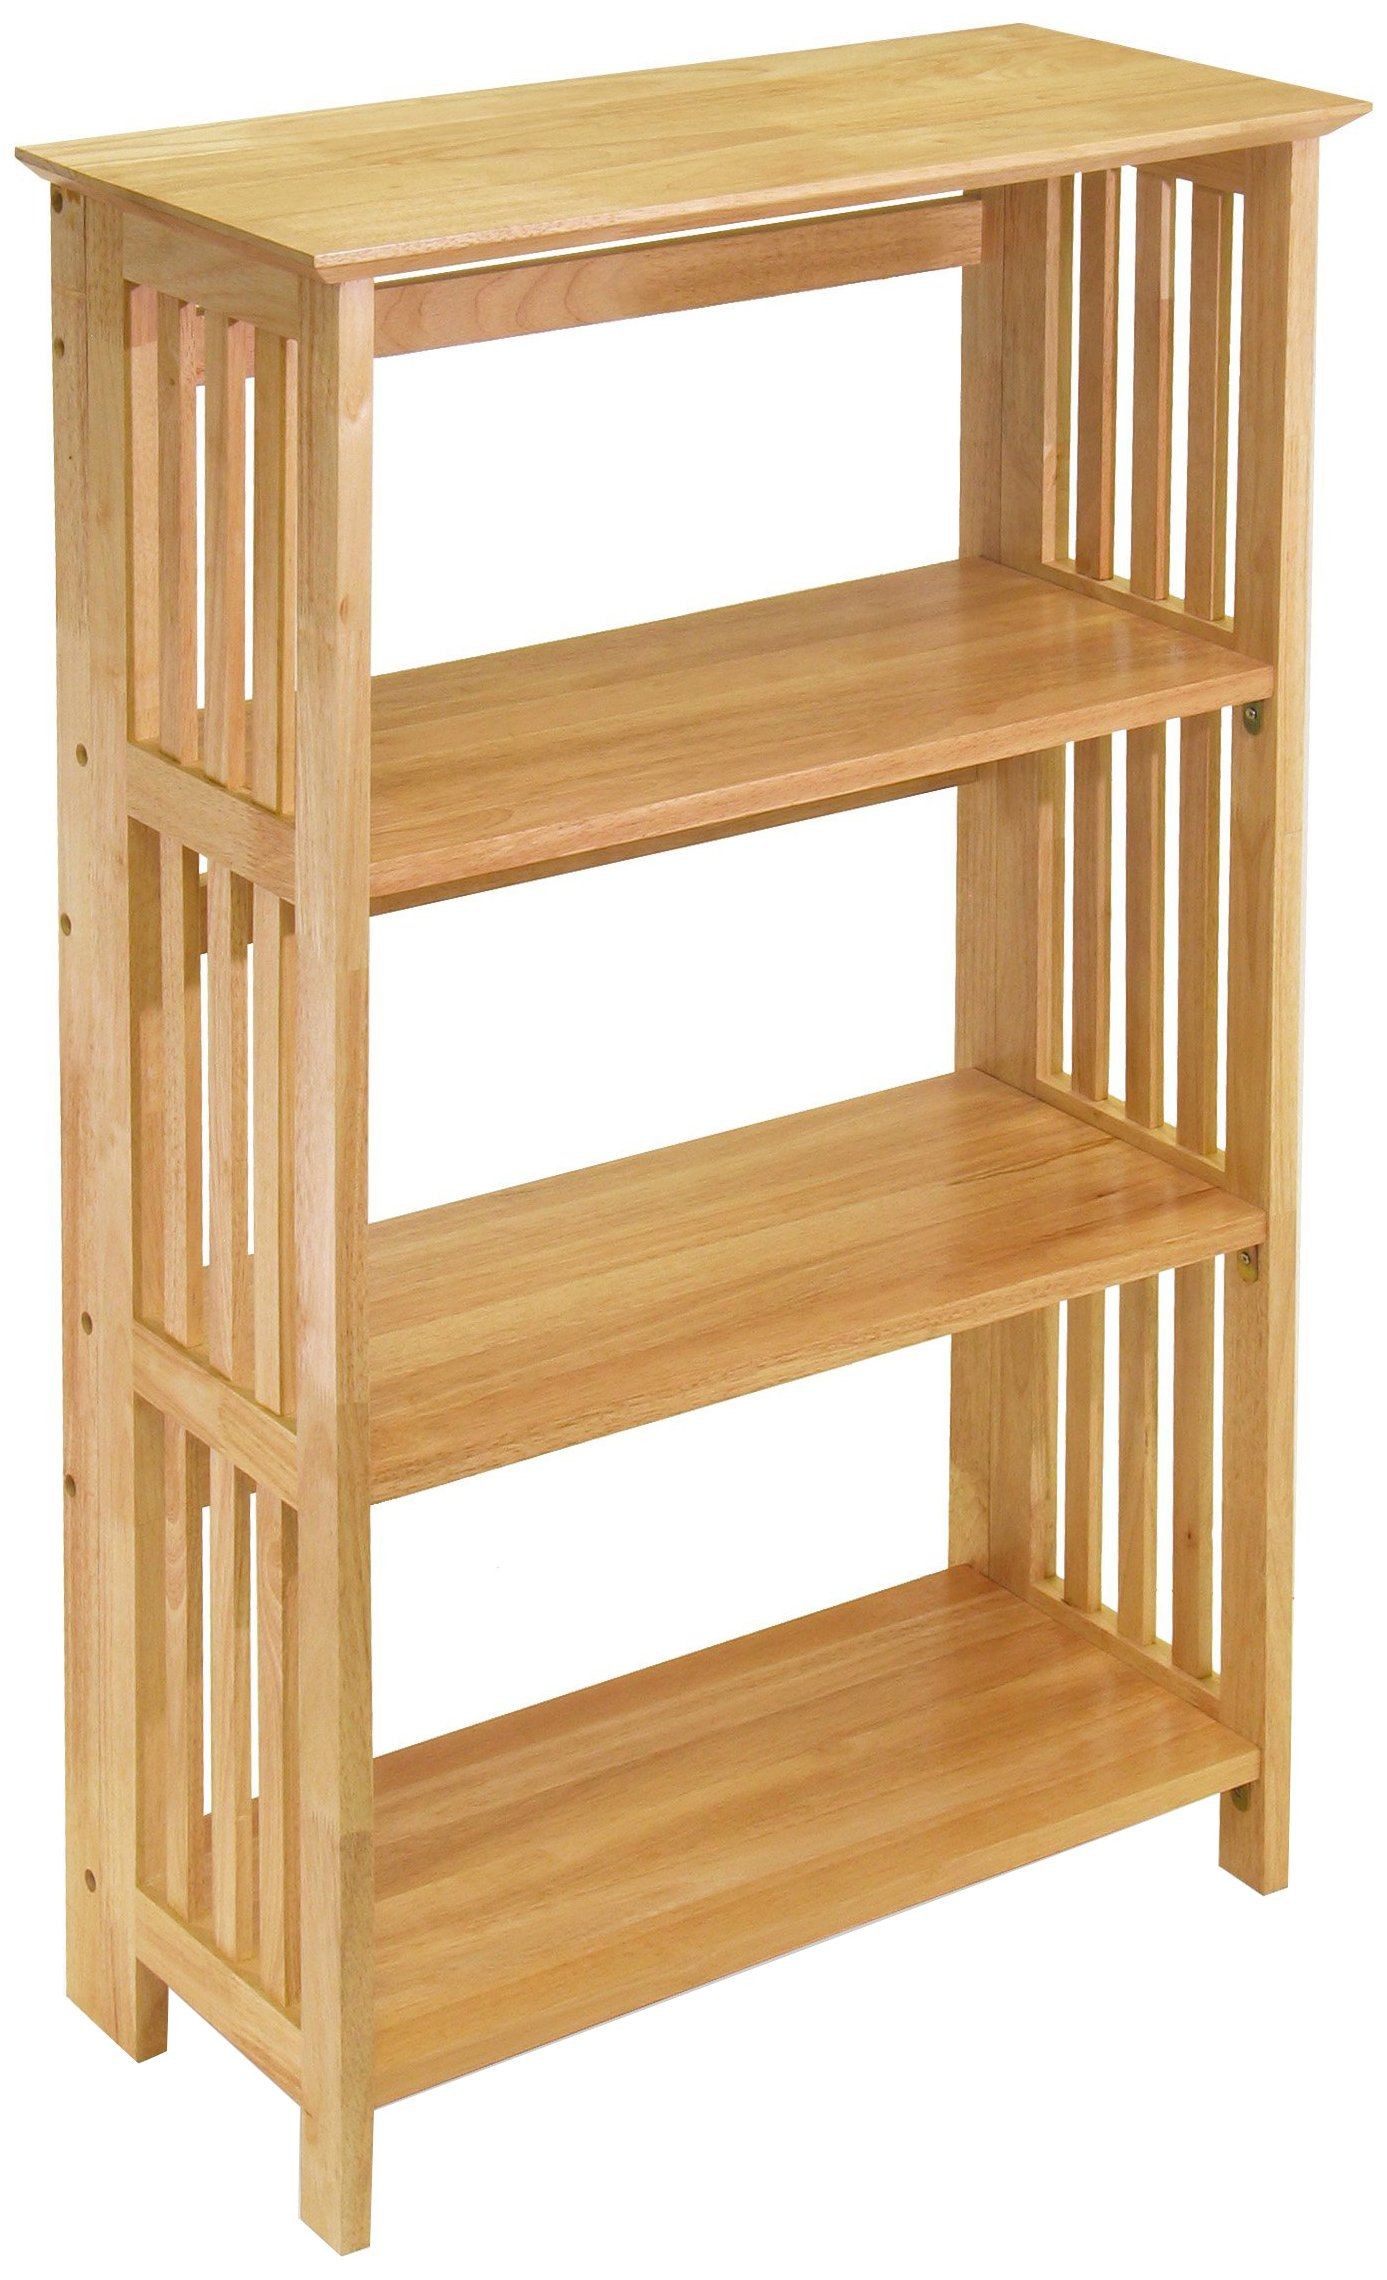 Winsome Wood Foldable 4tier Shelf Natural You Can Find Out More Details At The